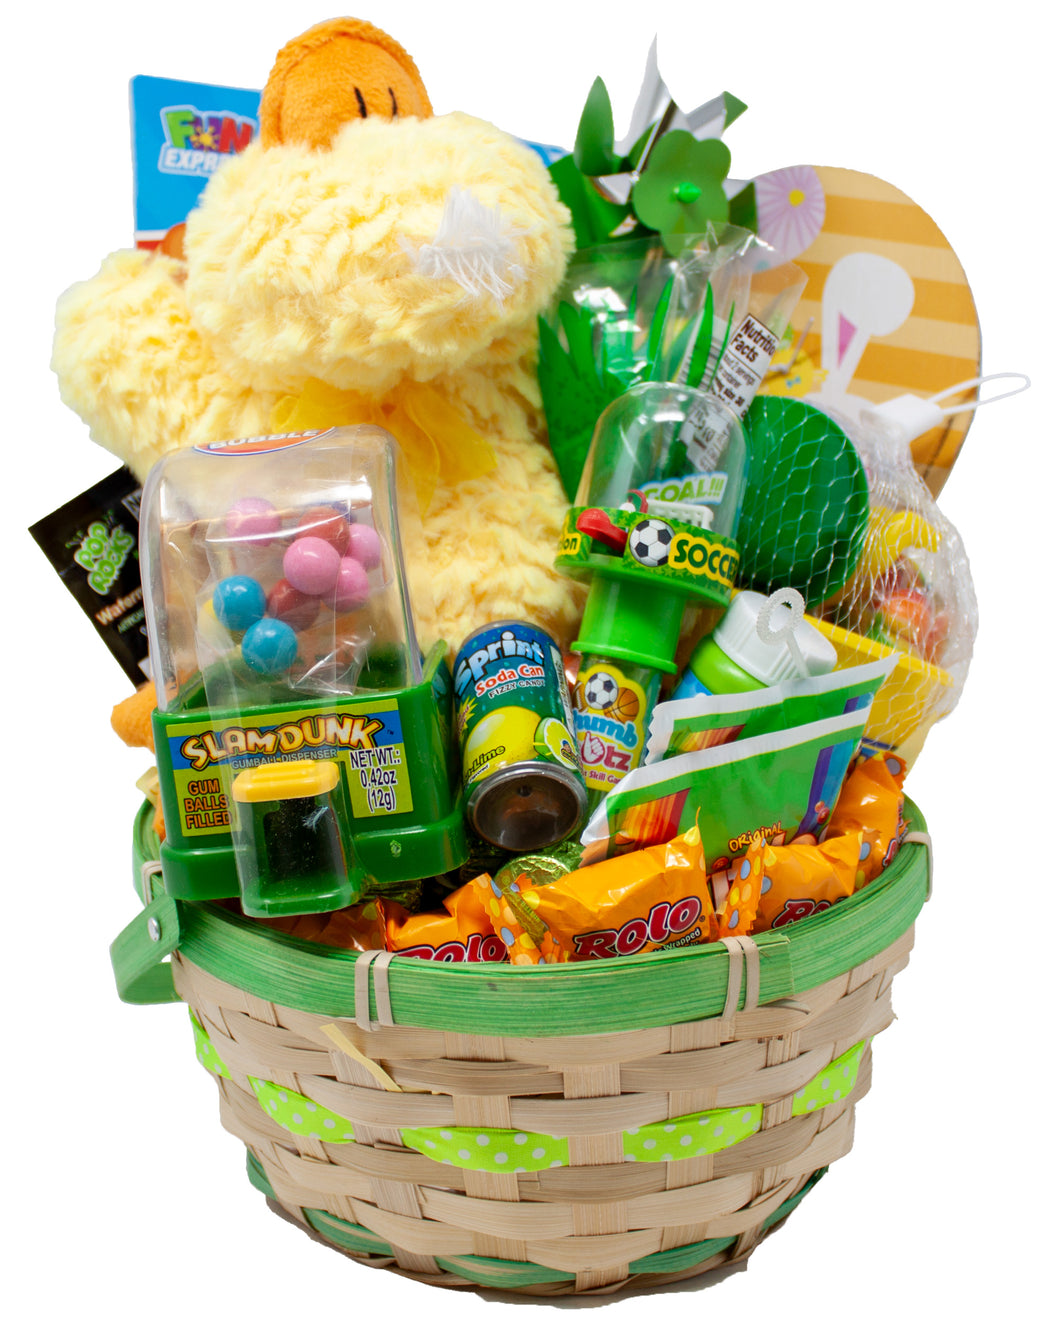 Pre-Made Green Pastel Easter Basket for Boys and Girls